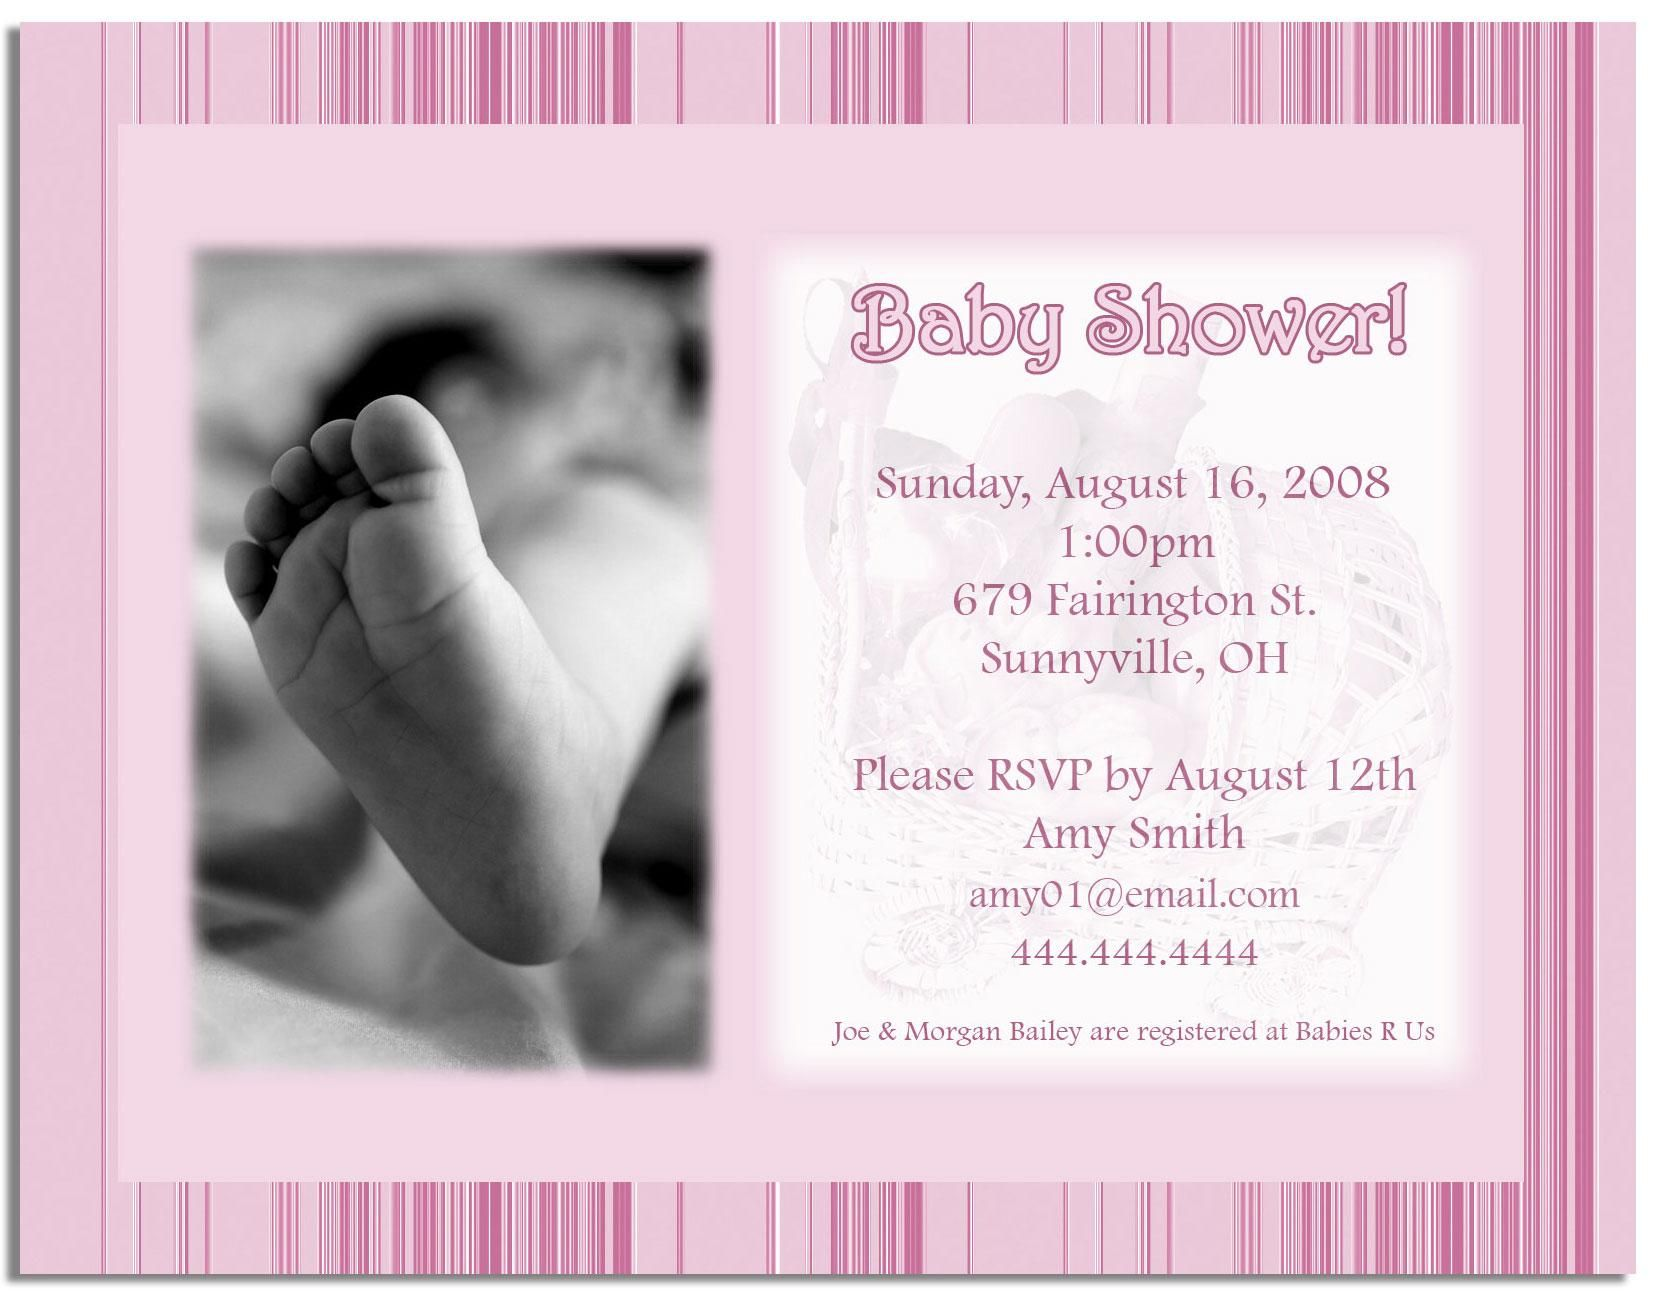 17 Best images about Homemade baby shower invitation on Pinterest ...